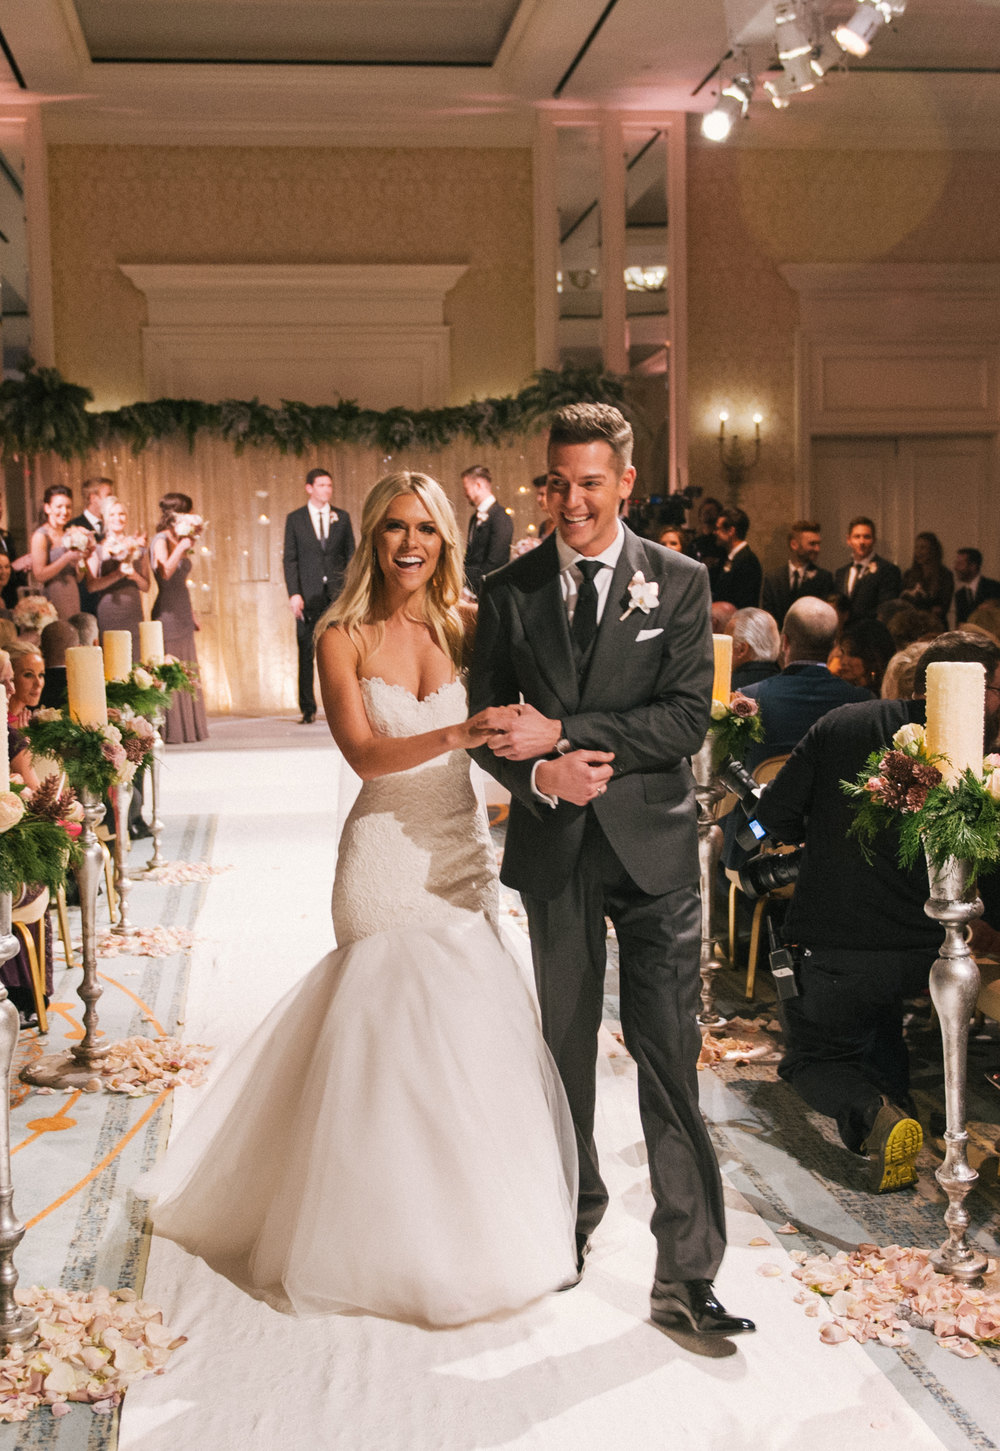 JasonKennedy.LaurenScruggs.DallasWedding5.jpg